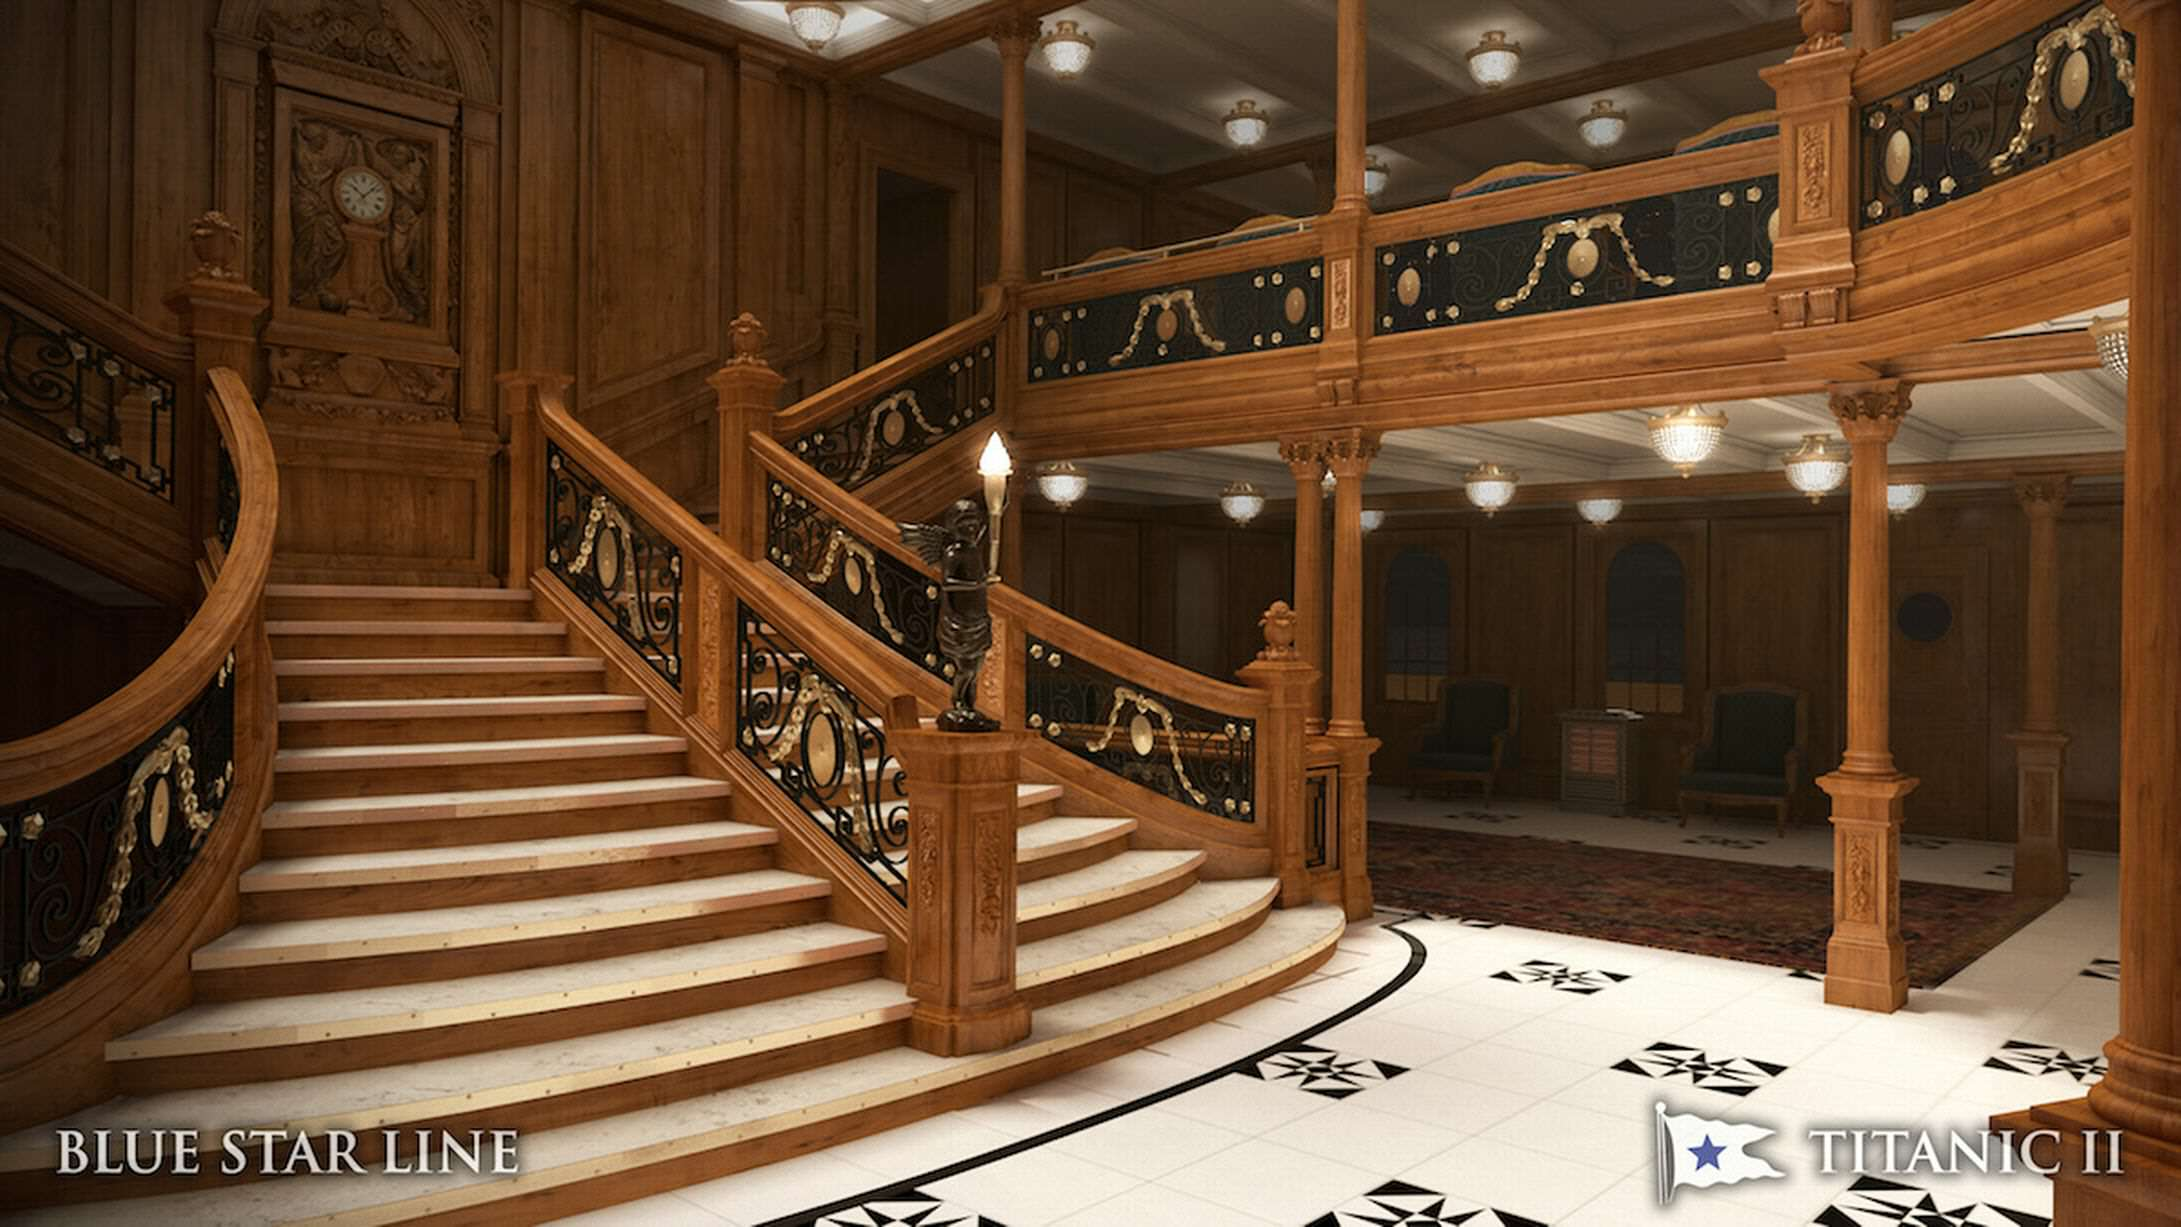 Incredible New Photos Give First Look Inside Titanic 2 titanic new 9